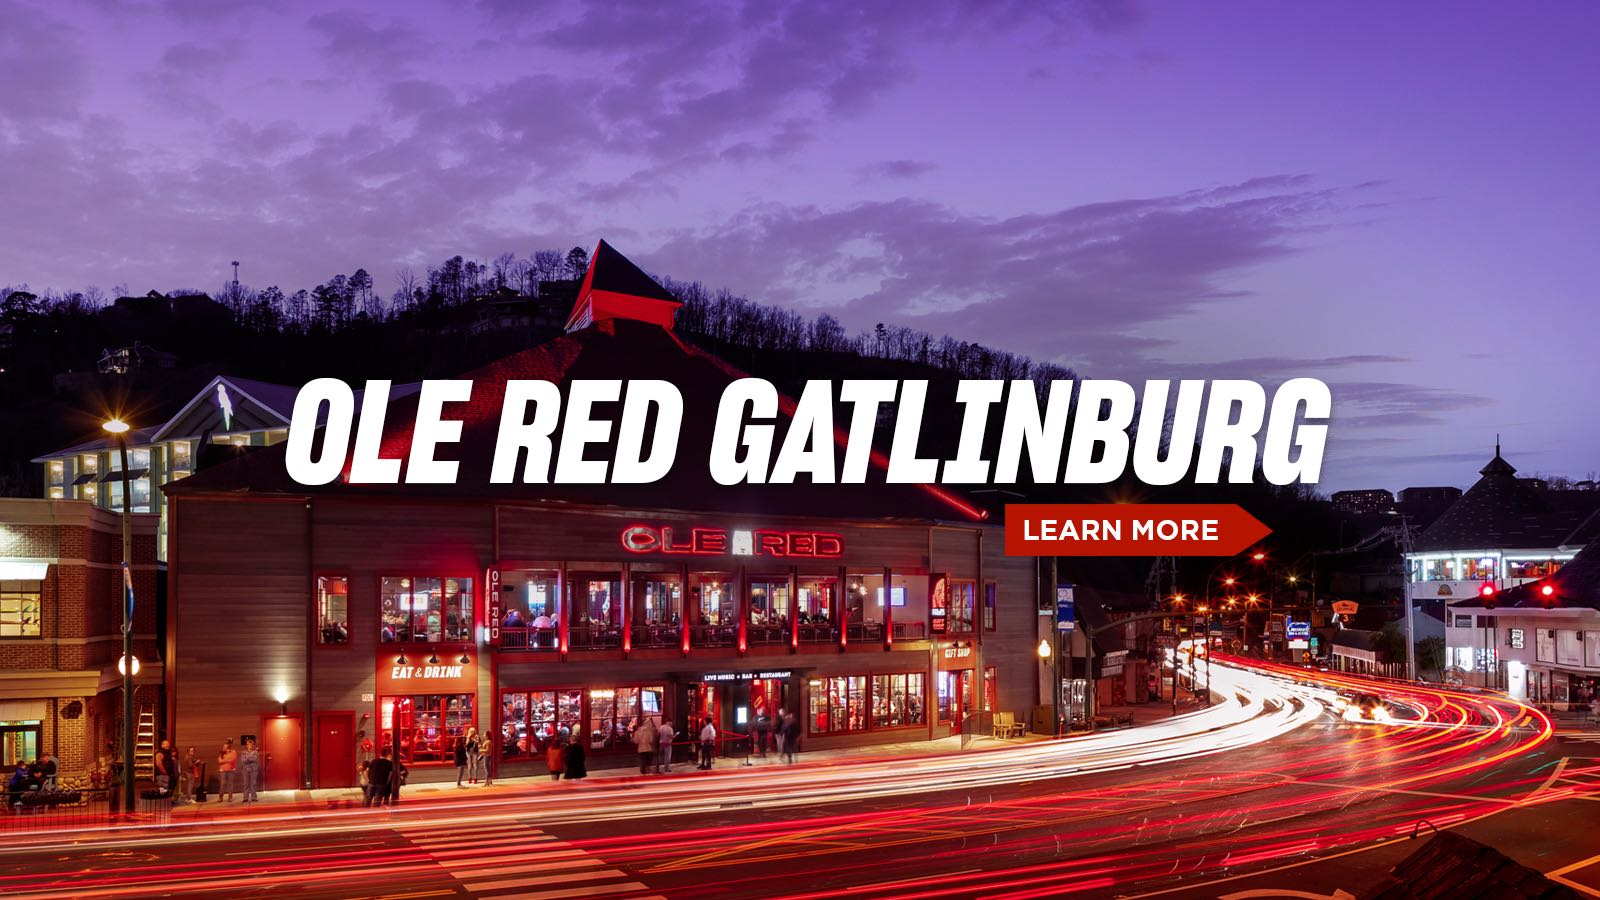 Ole Red Gatlinburg